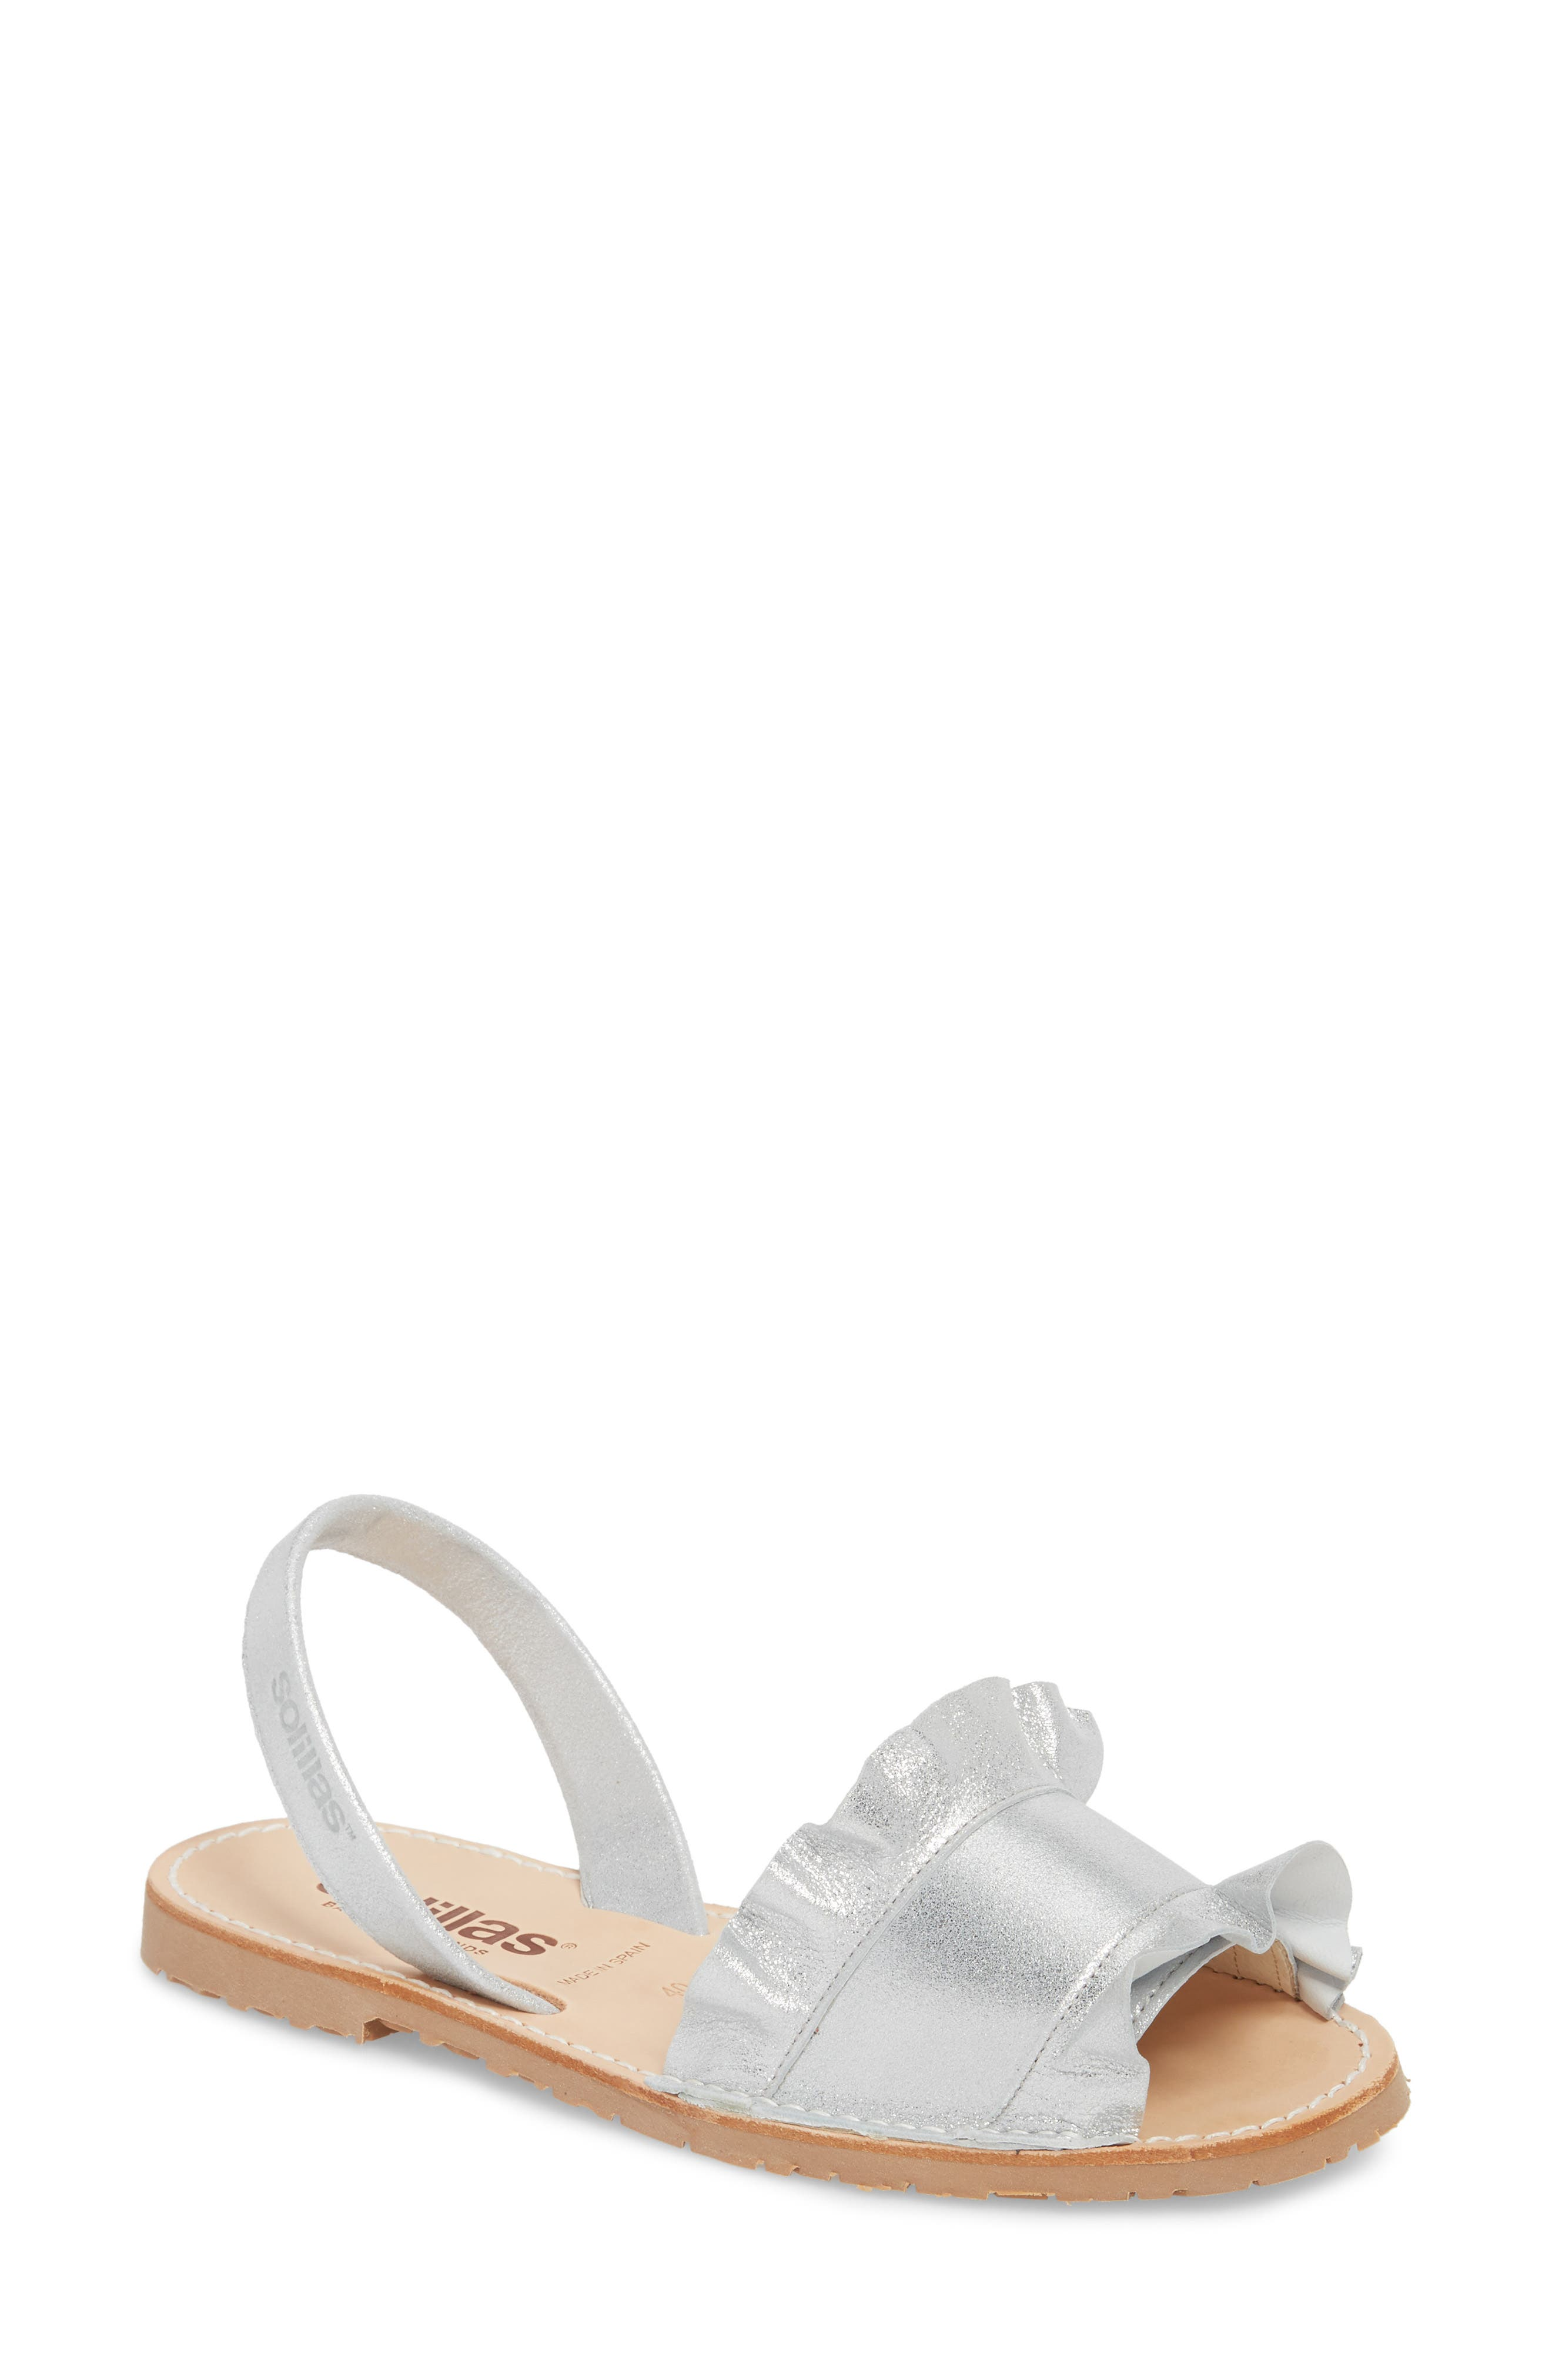 SOLILLAS Frilled Flat Sandal, Main, color, 040